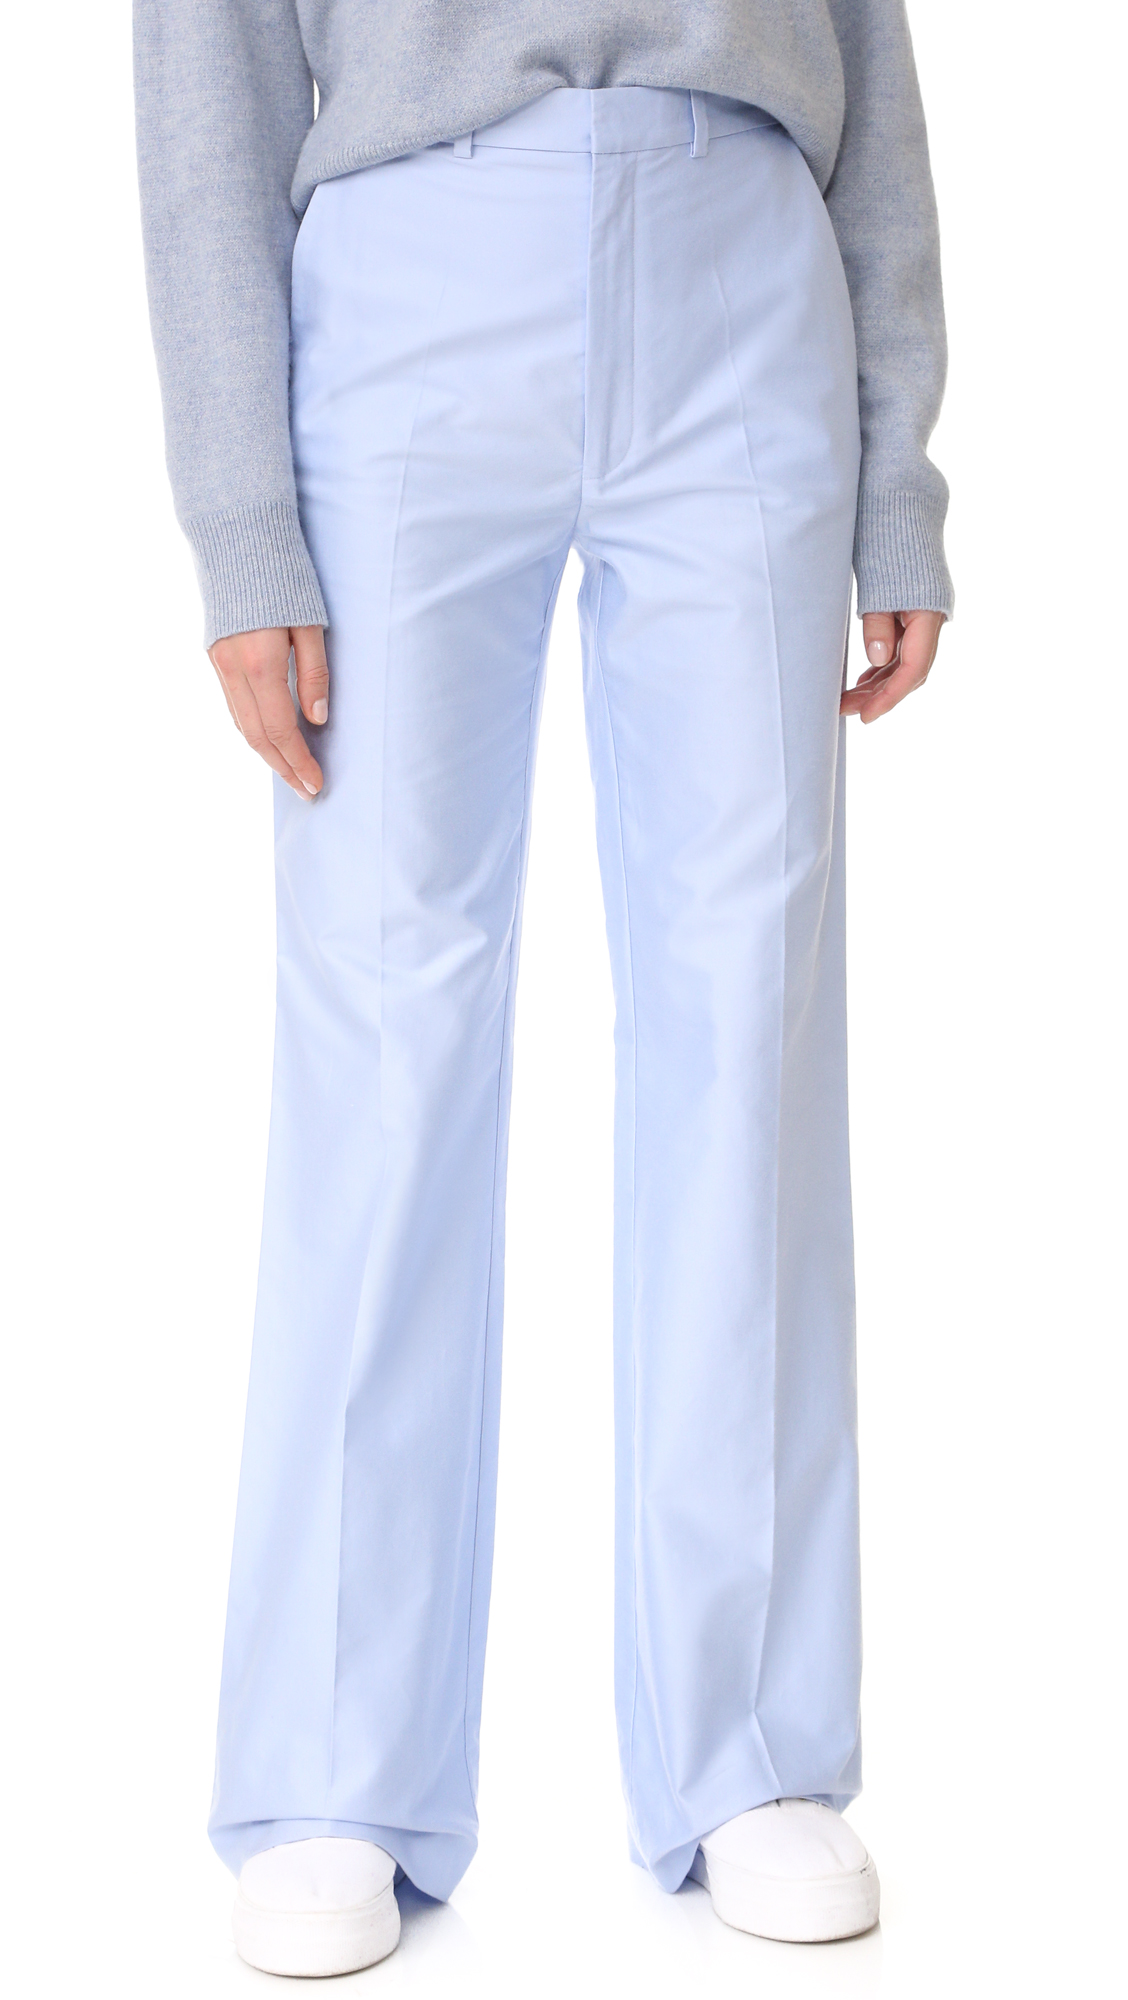 These pastel Joseph wide leg trousers have a clean lined, preppy feel. Slant hip pockets and welt back pocket. Hook and eye closure and zip fly. Fabric: Mid weight suiting. 100% cotton. Hand wash or dry clean.